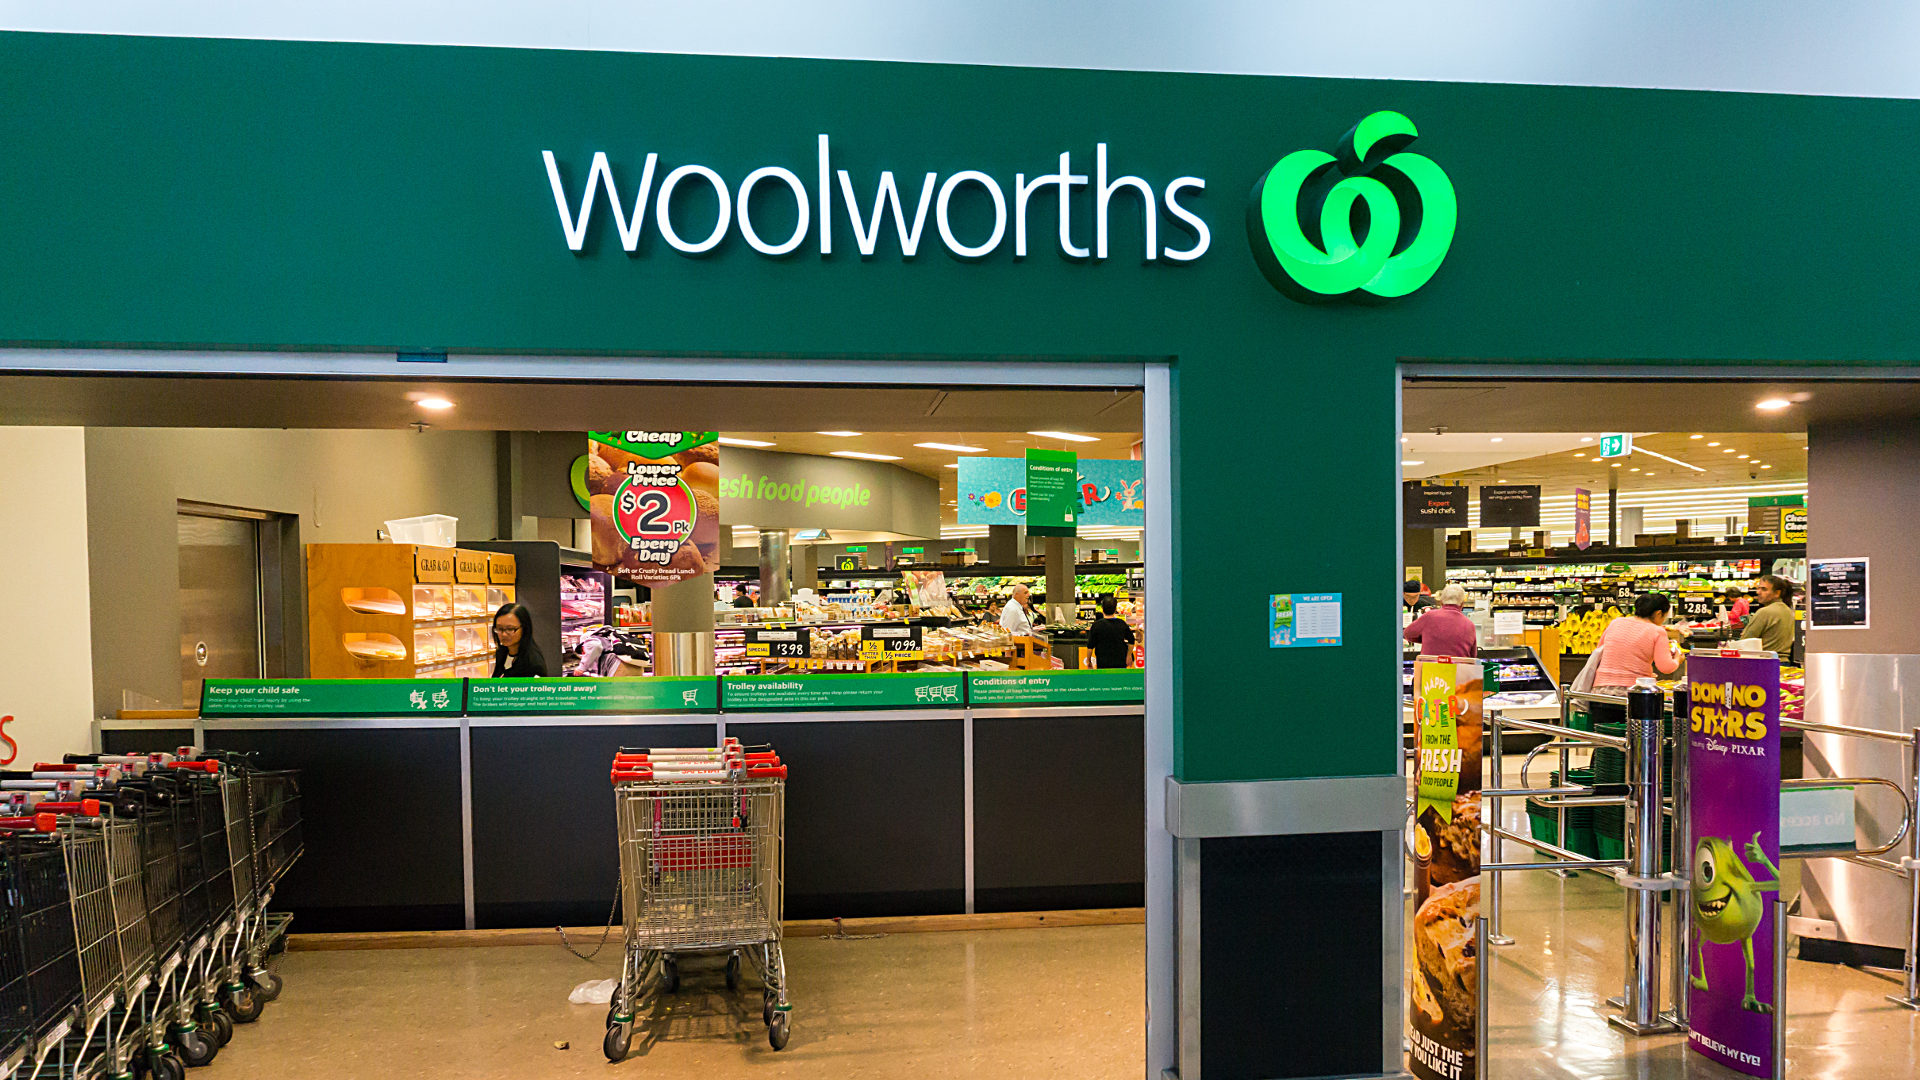 woolworths - photo #21